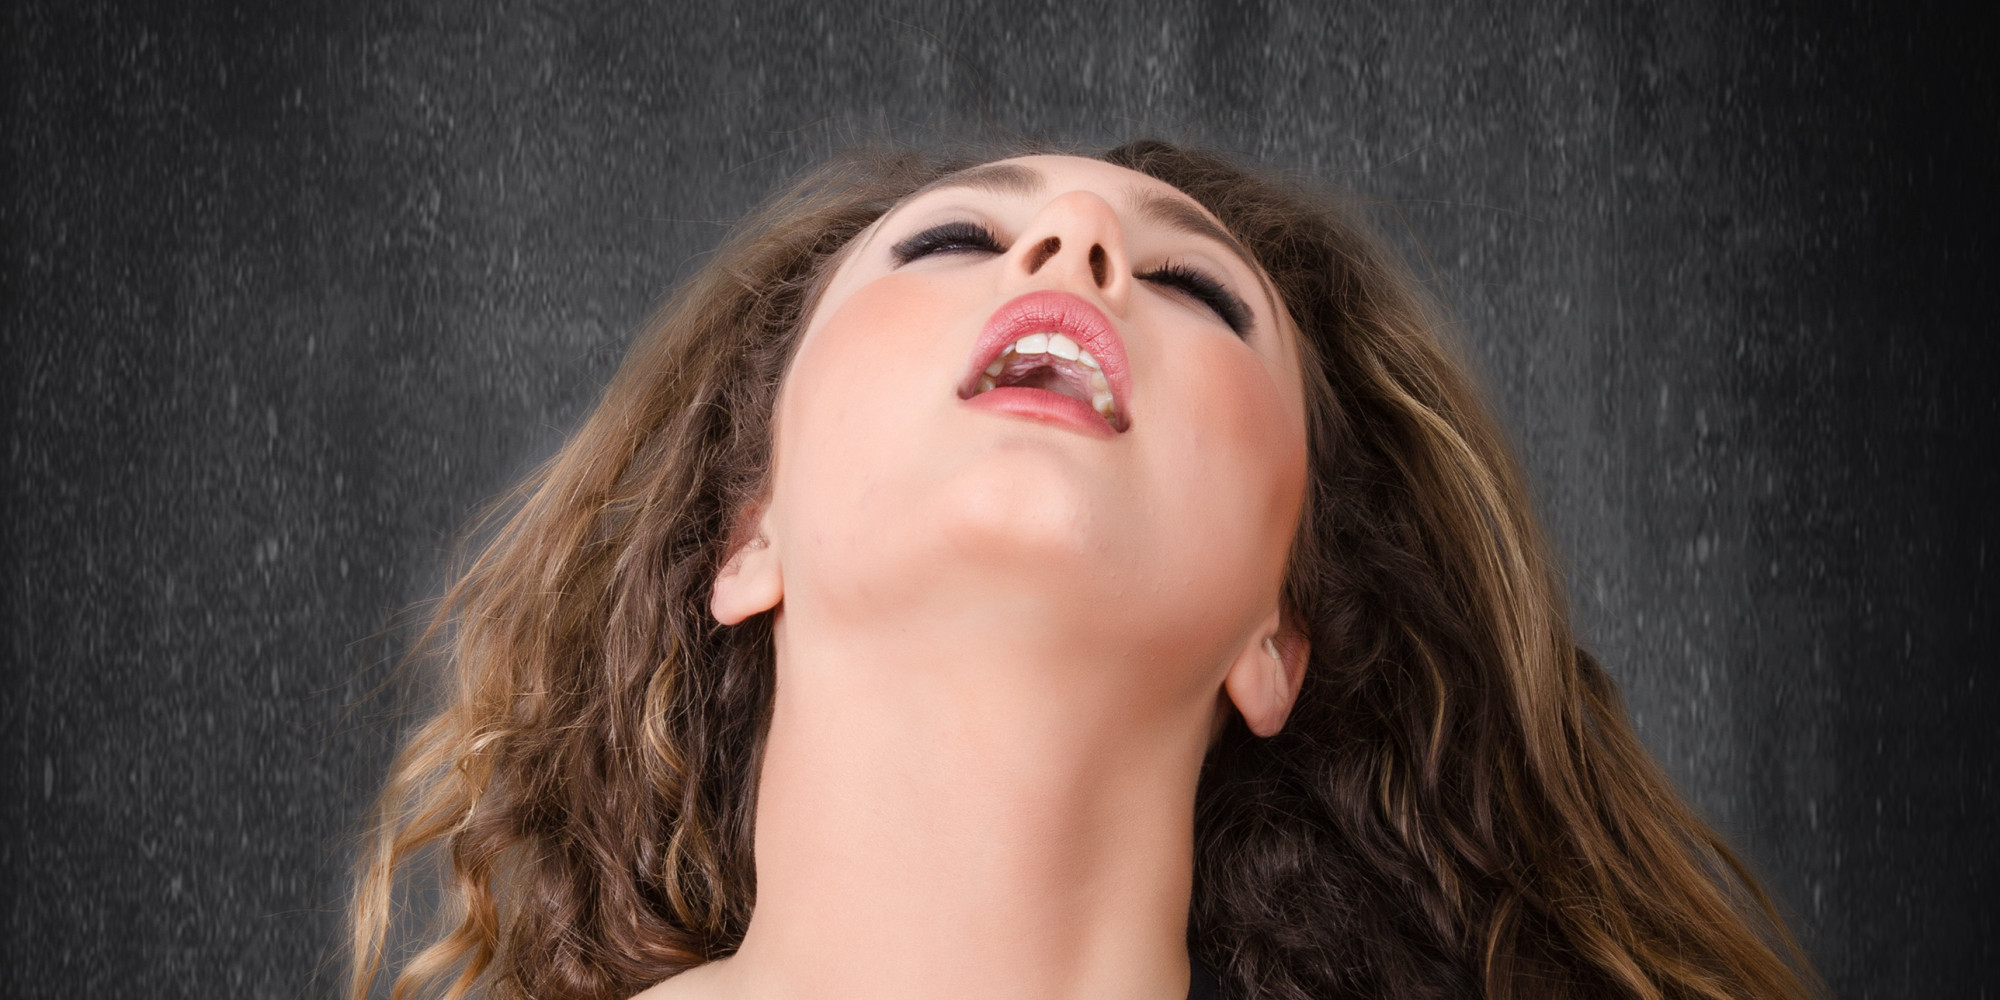 Faces Of Women Having An Orgasm